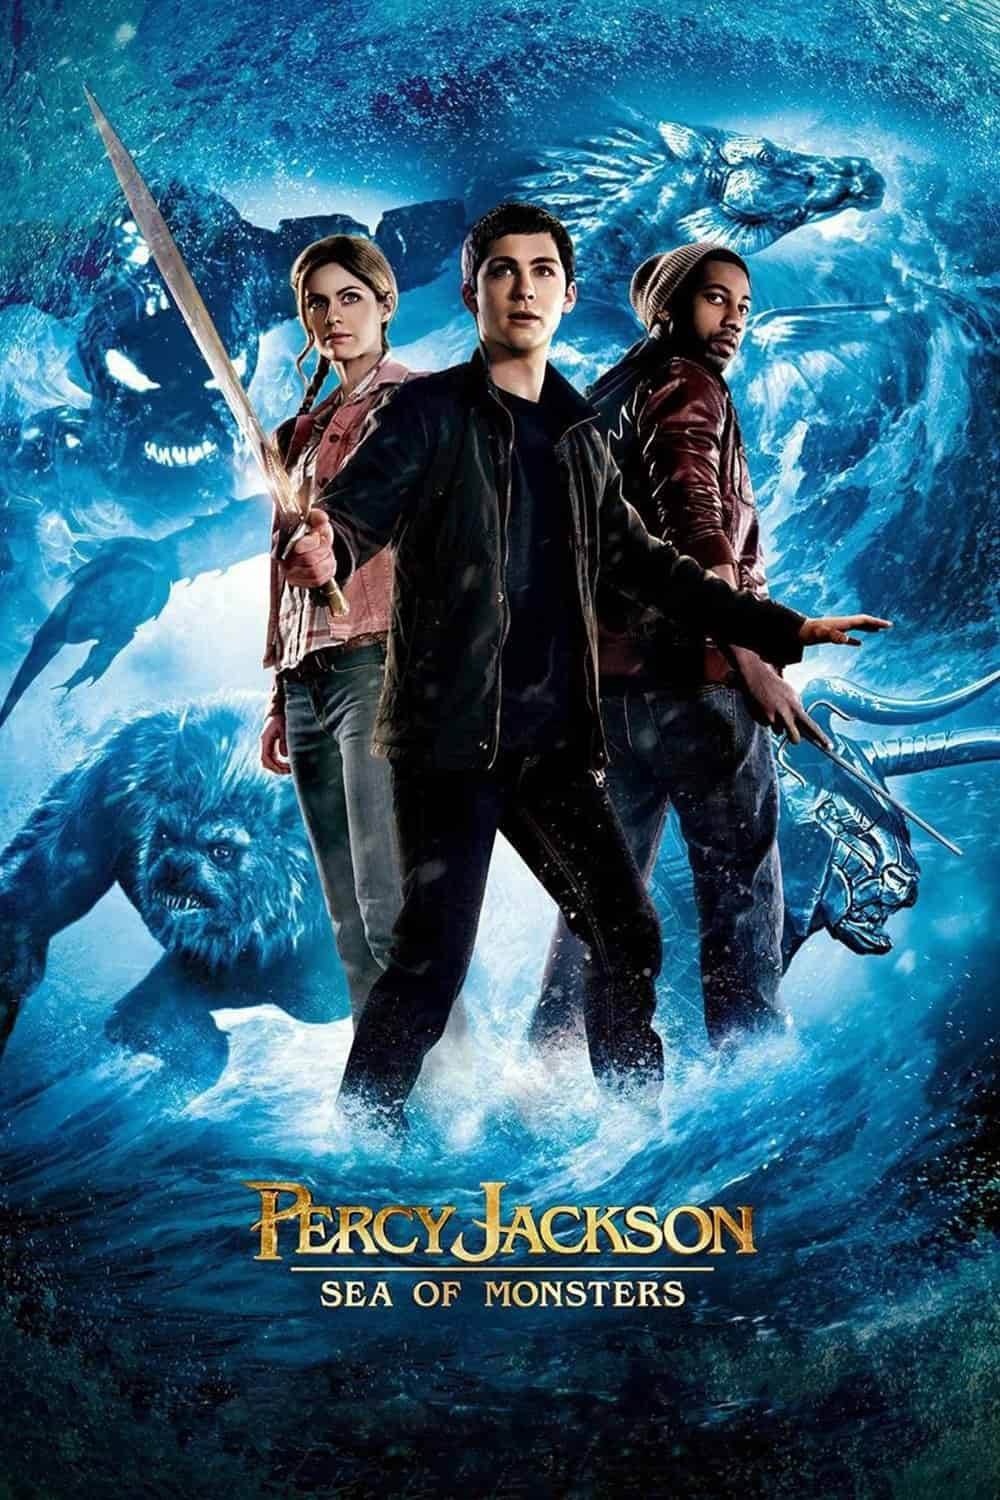 Percy Jackson: Sea of Monsters, 2013